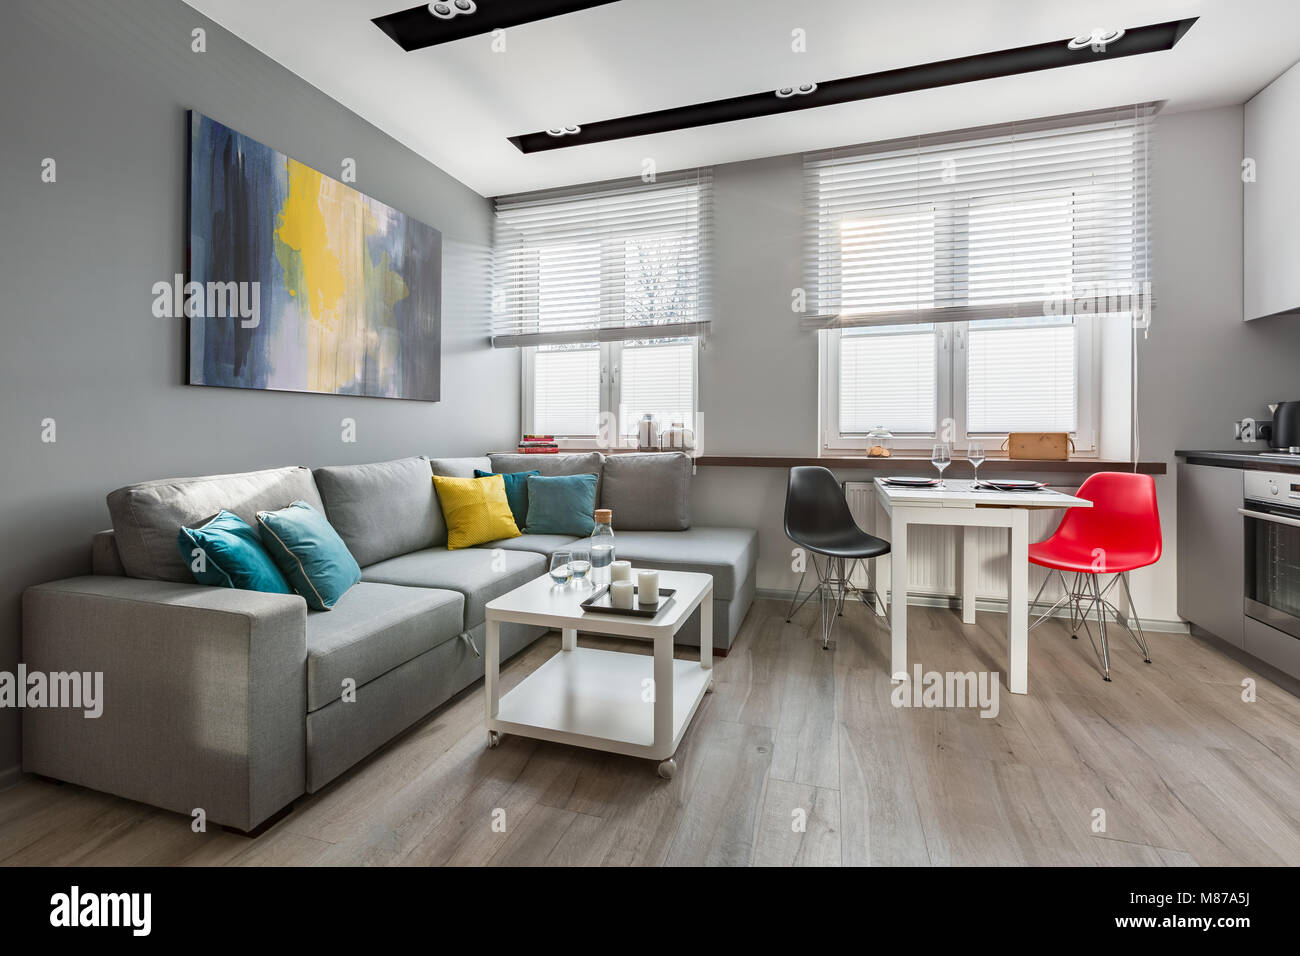 https://c8.alamy.com/comp/M87A5J/modern-studio-apartment-in-gray-with-big-sofa-and-open-kitchen-M87A5J.jpg